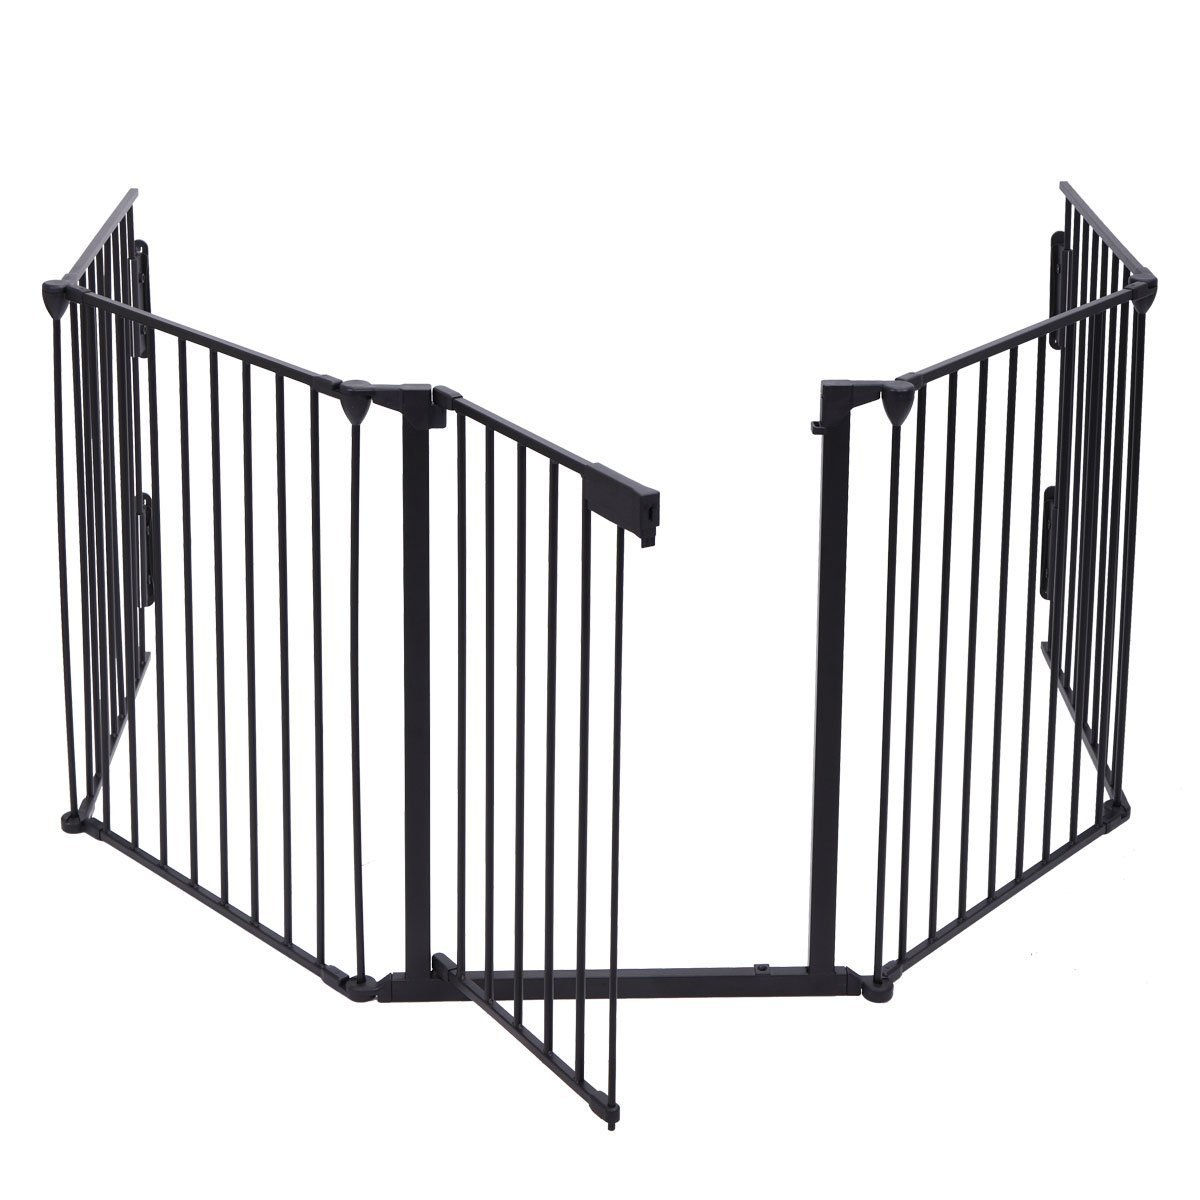 JAXPETY 25''x 30'' 5 Panel Baby Safety Fence Hearth Gate BBQ Fire Gate Fireplace Metal Plastic Pet Dog Cat by JAXPETY (Image #4)